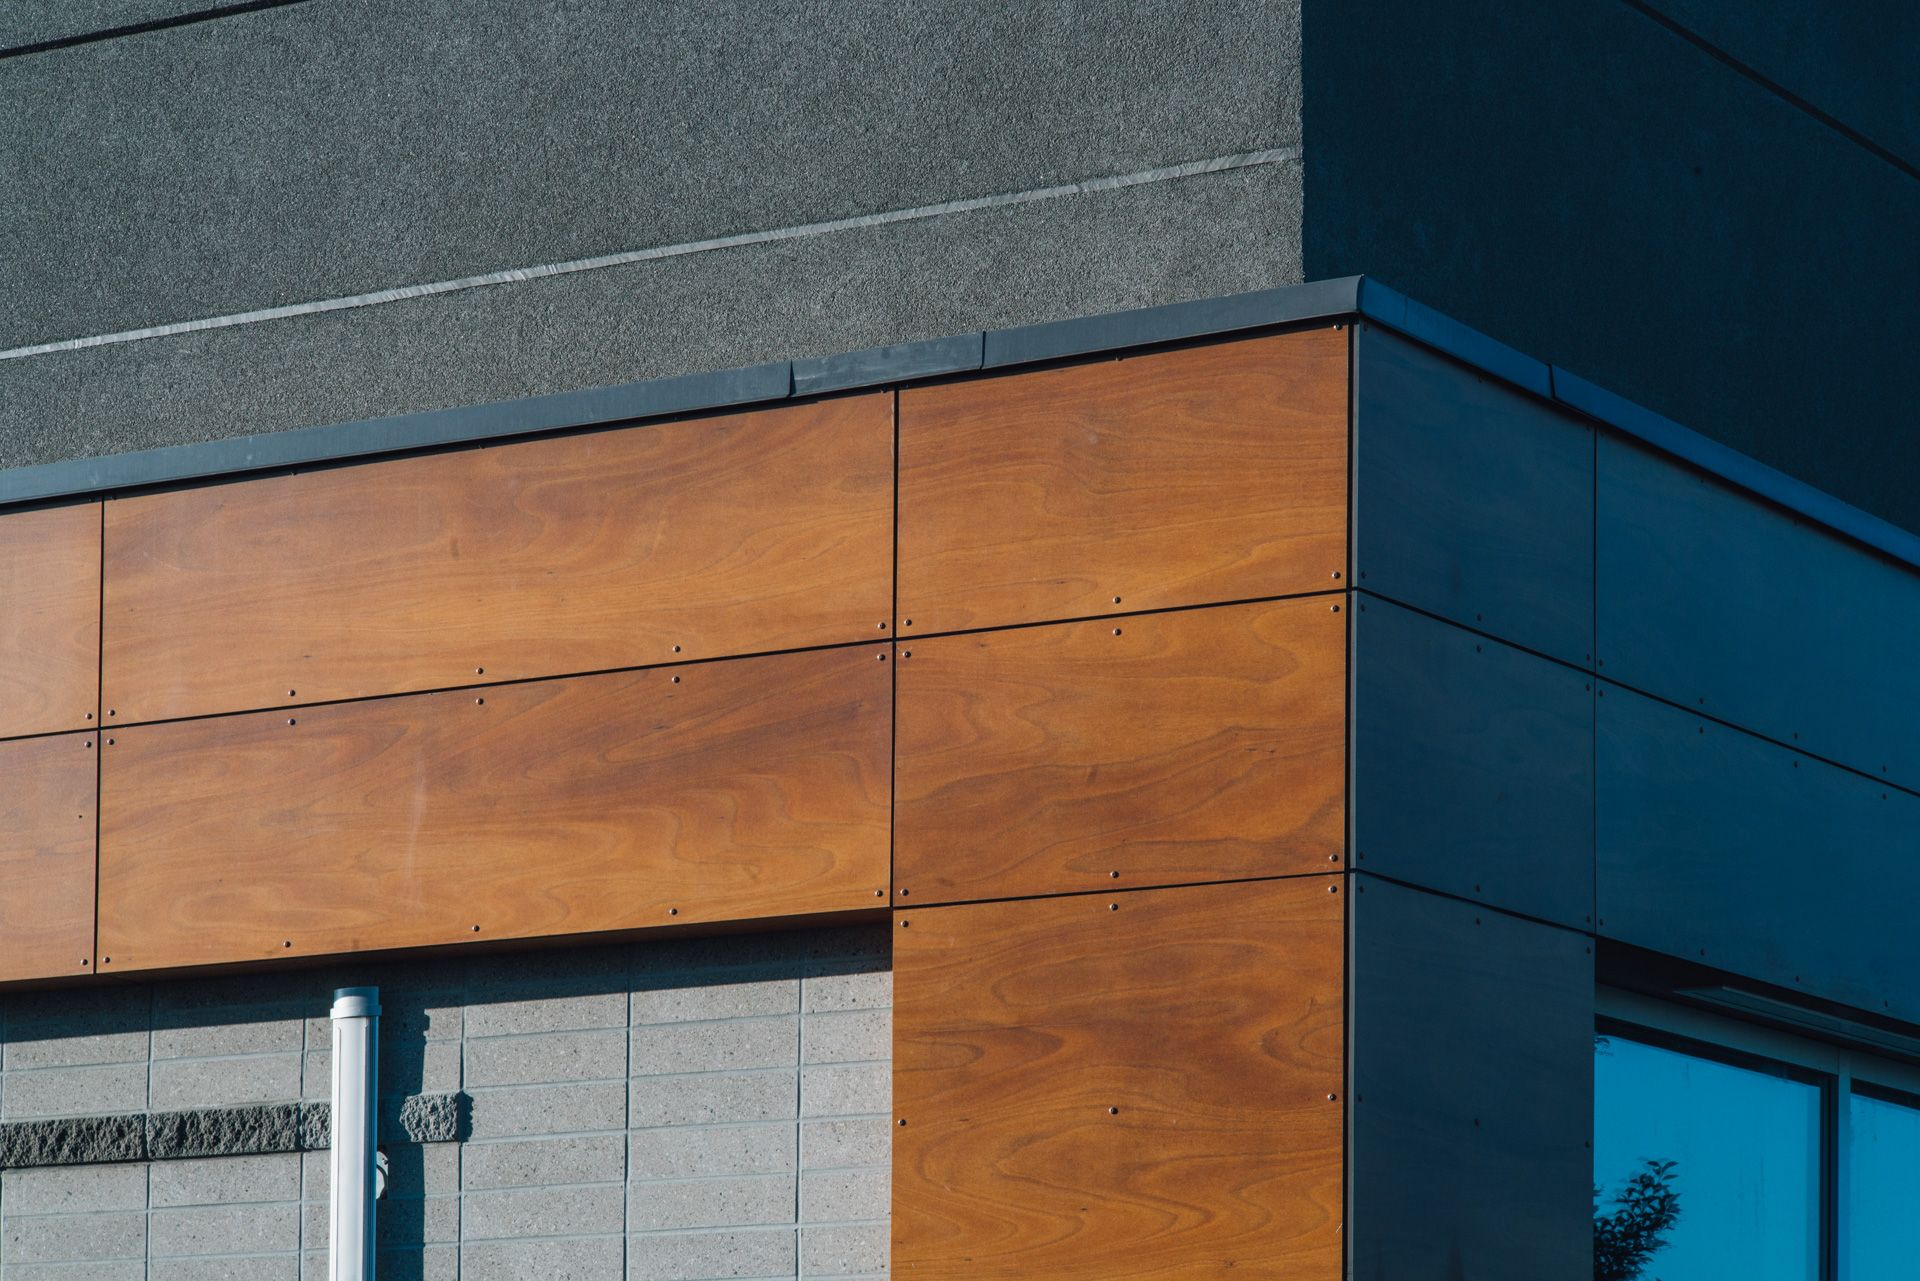 Wood composite panels / Phenolic Resin Panels, on the corner of a building.  | Architecture, Composite wood, Paneling